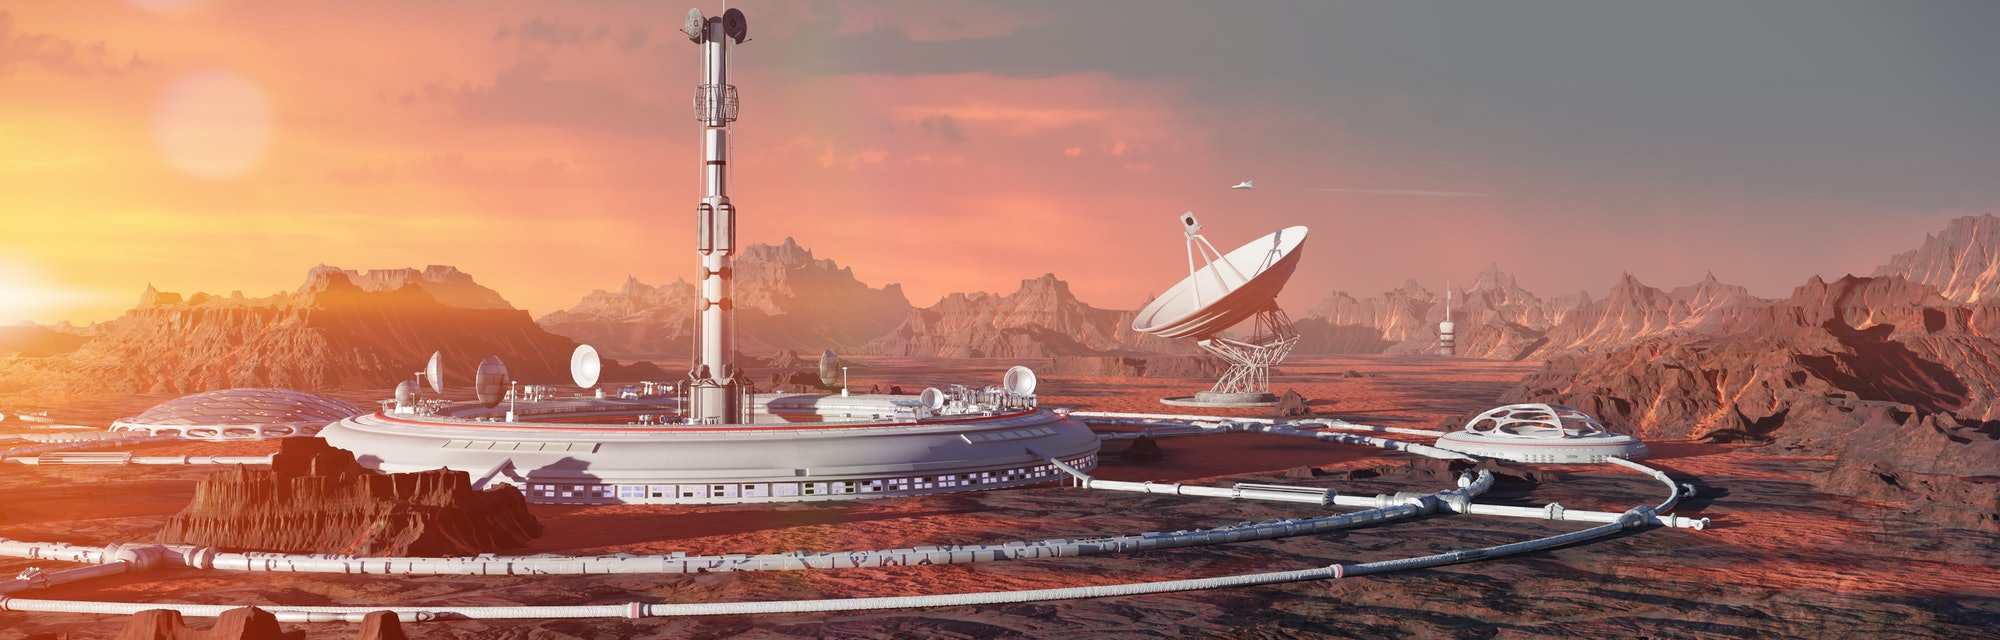 station on Mars surface, first martian colony in desert landscape on the red planet (3d space illustration)